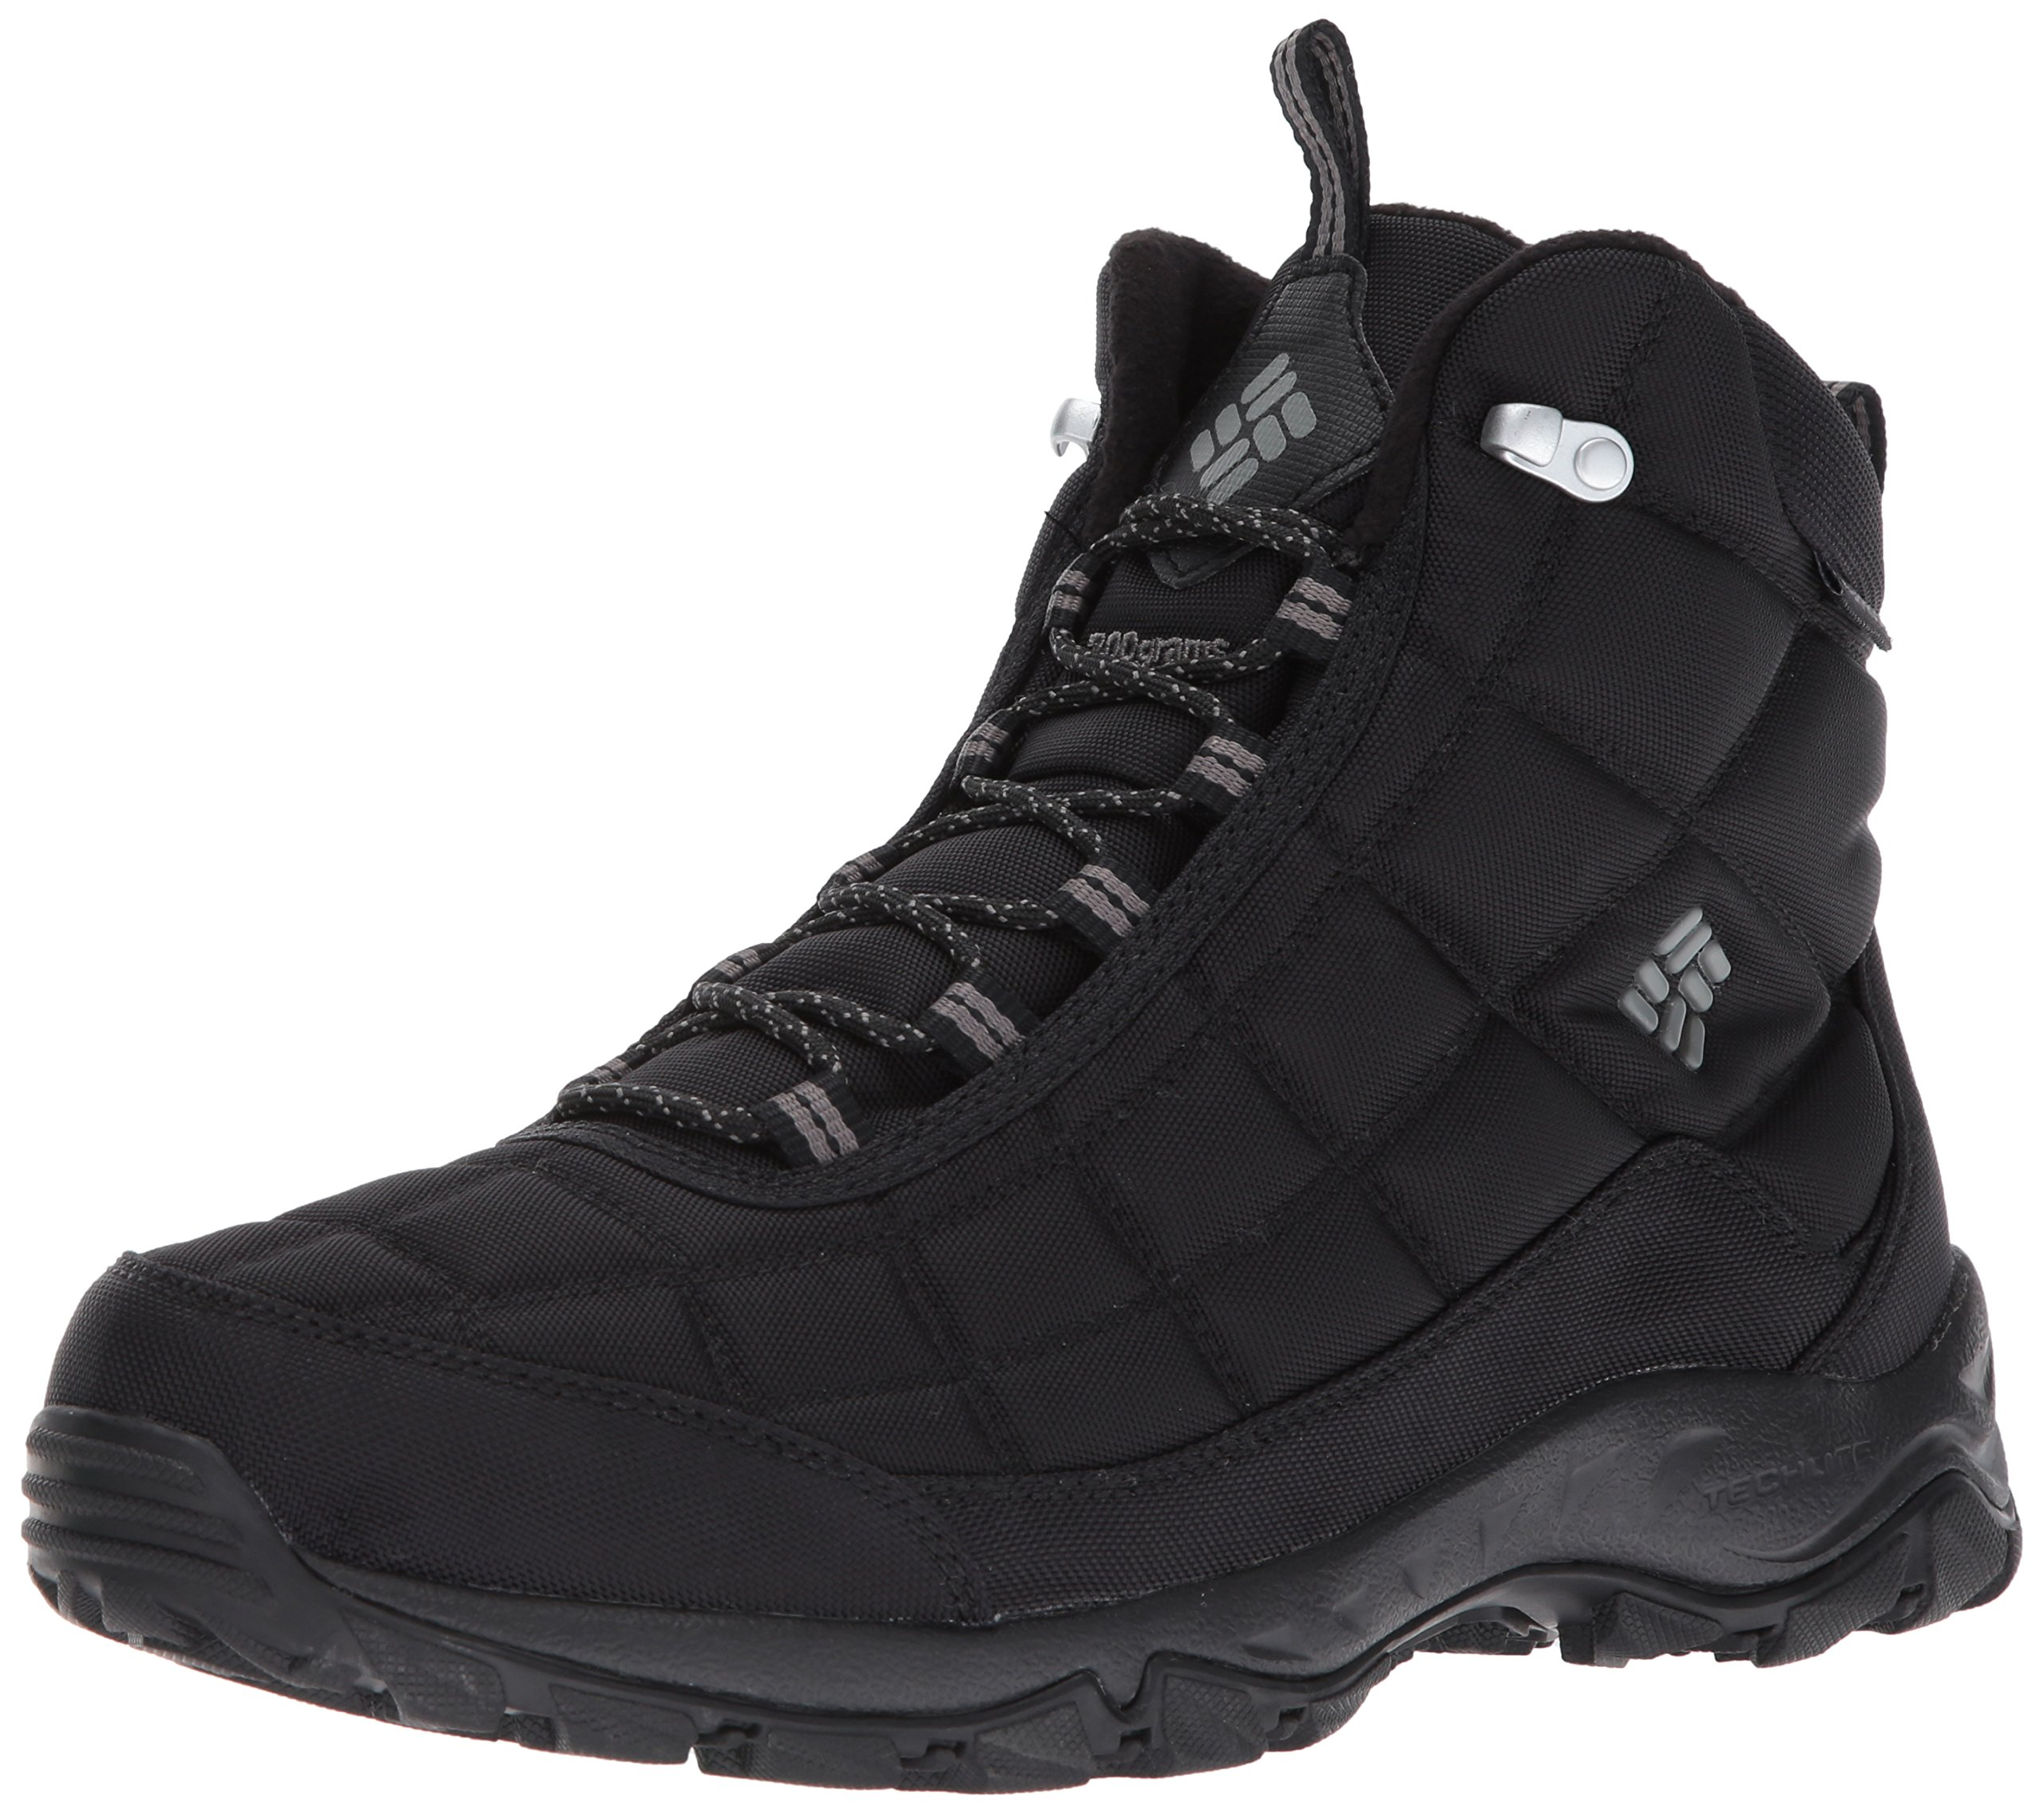 Columbia Men's Firecamp Boot Hiking Shoe, Black, City Grey, 9.5 D US by Columbia